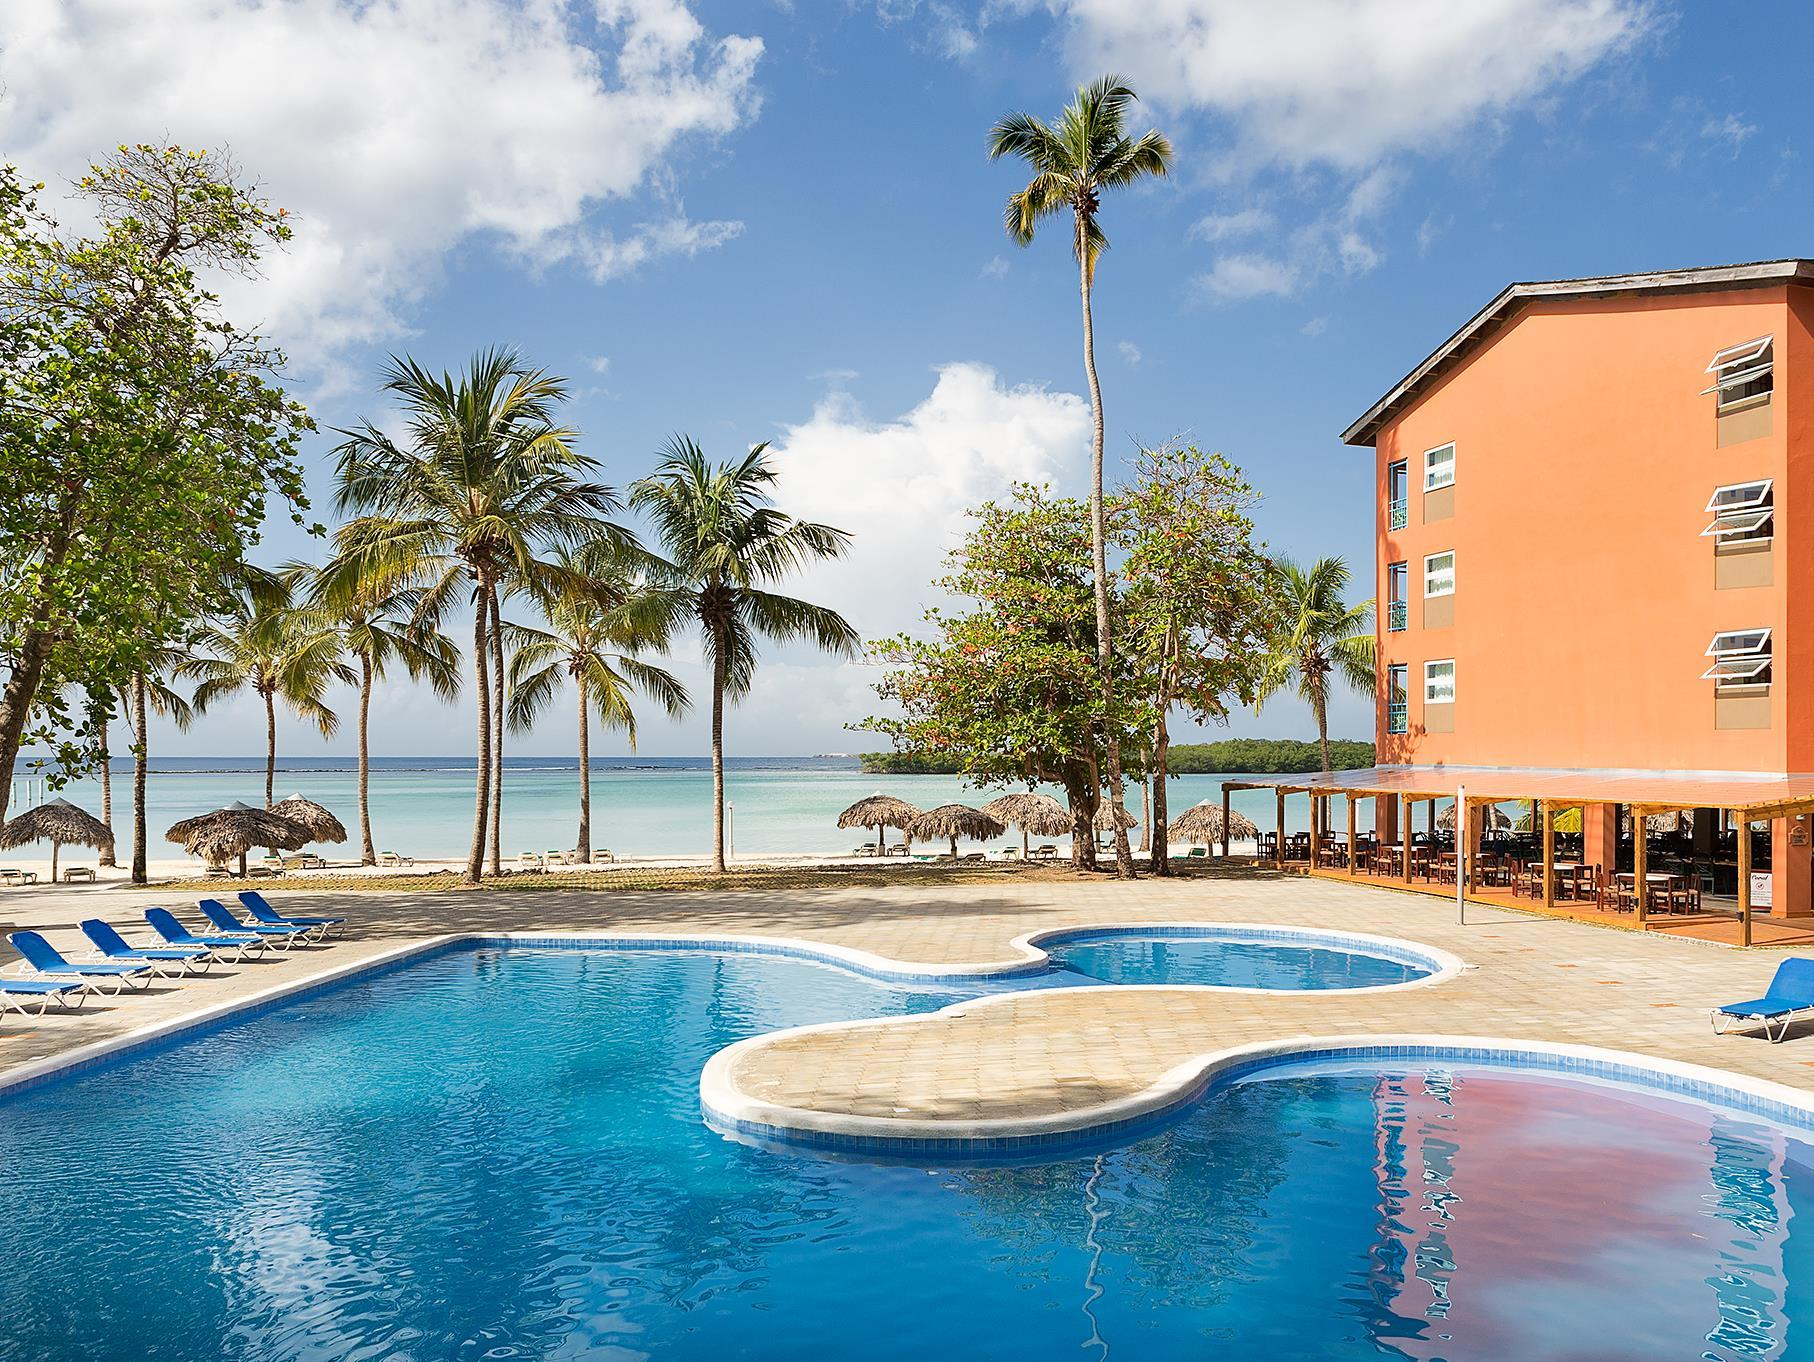 Don Juan Beach Resort - Hotels and Accommodation in Dominican Republic, Central America And Caribbean